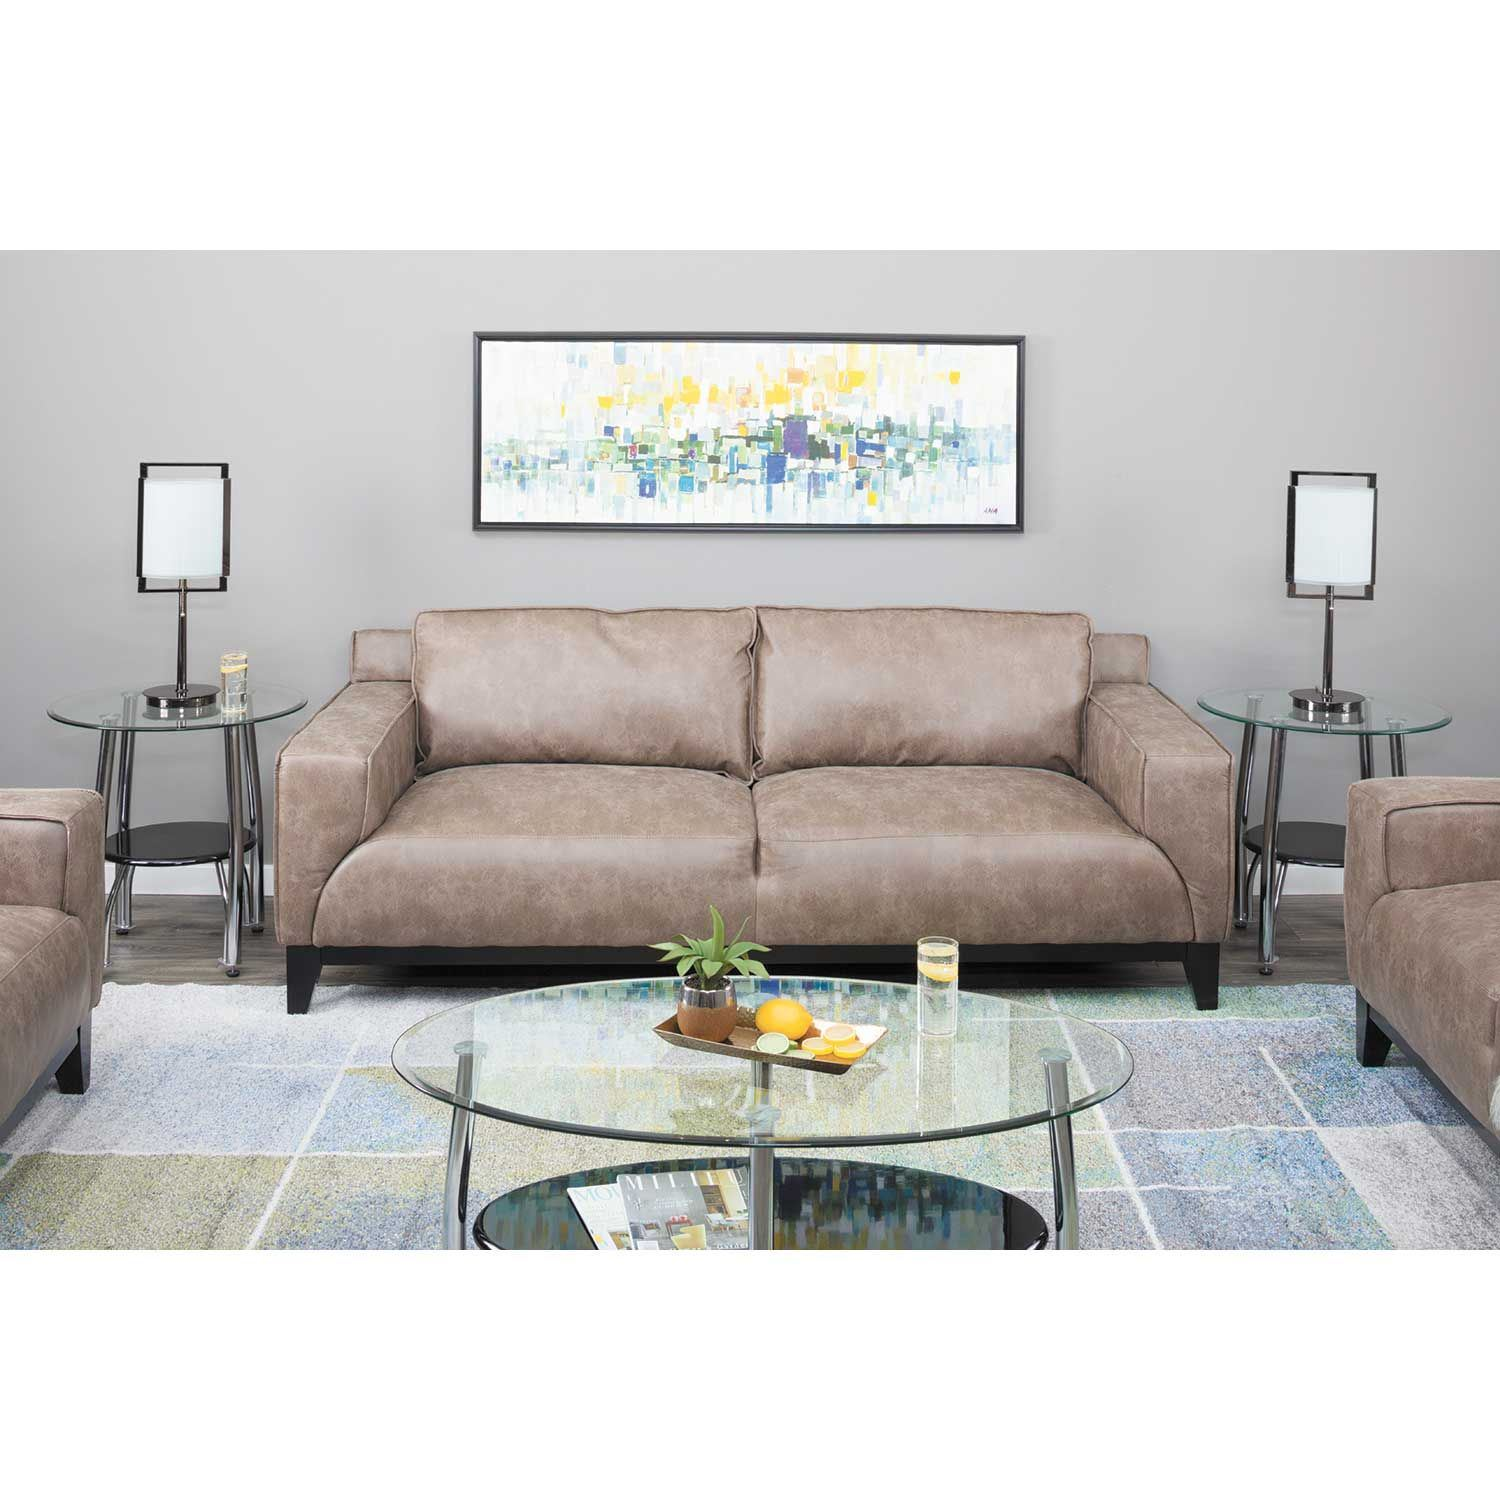 Sofa Entertainment Group Llc Hampton Sofa Uhp1201300 Mackenzie Mushroom Elements